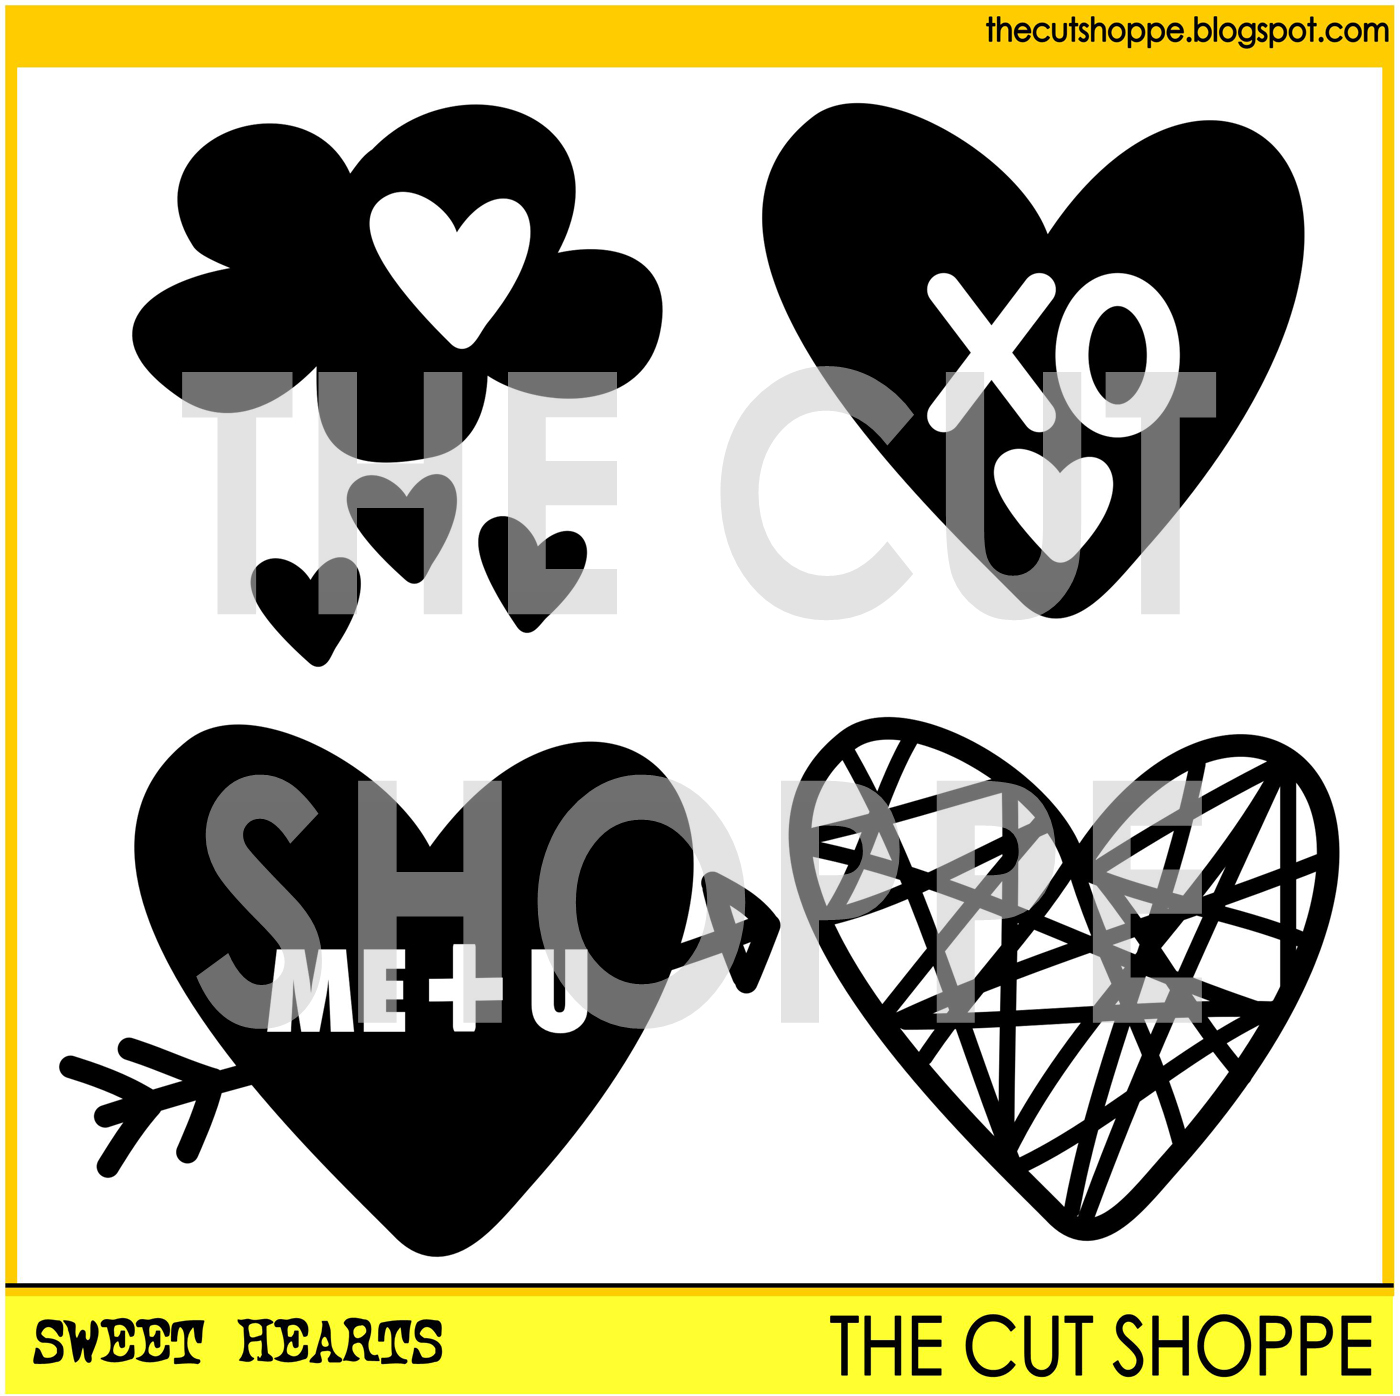 https://www.etsy.com/listing/220418531/the-sweet-hearts-cut-file-includes-4?ref=shop_home_active_1